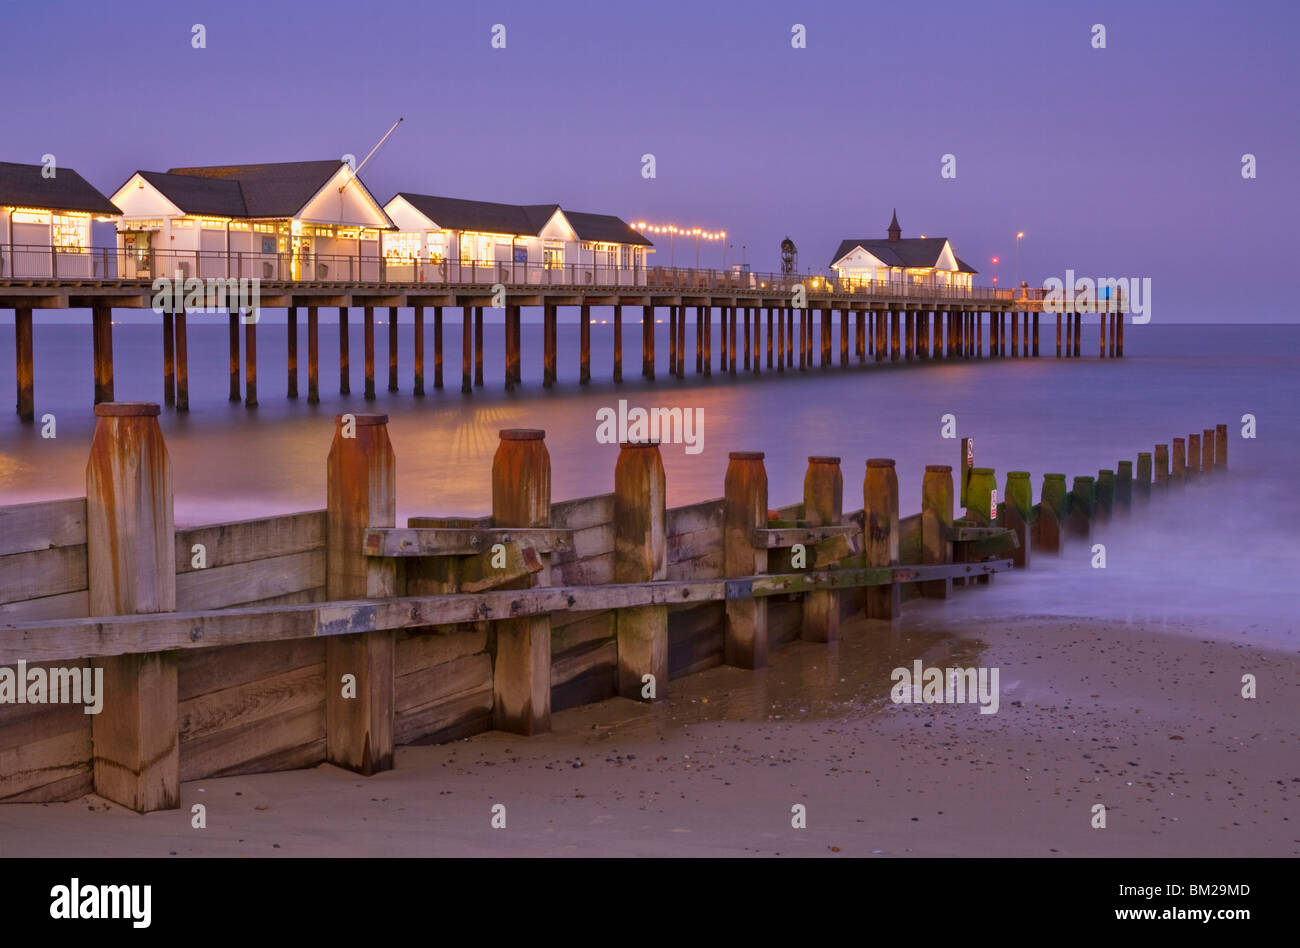 Southwold pier and wooden groyne at sunset, Southwold, Suffolk, UK - Stock Image